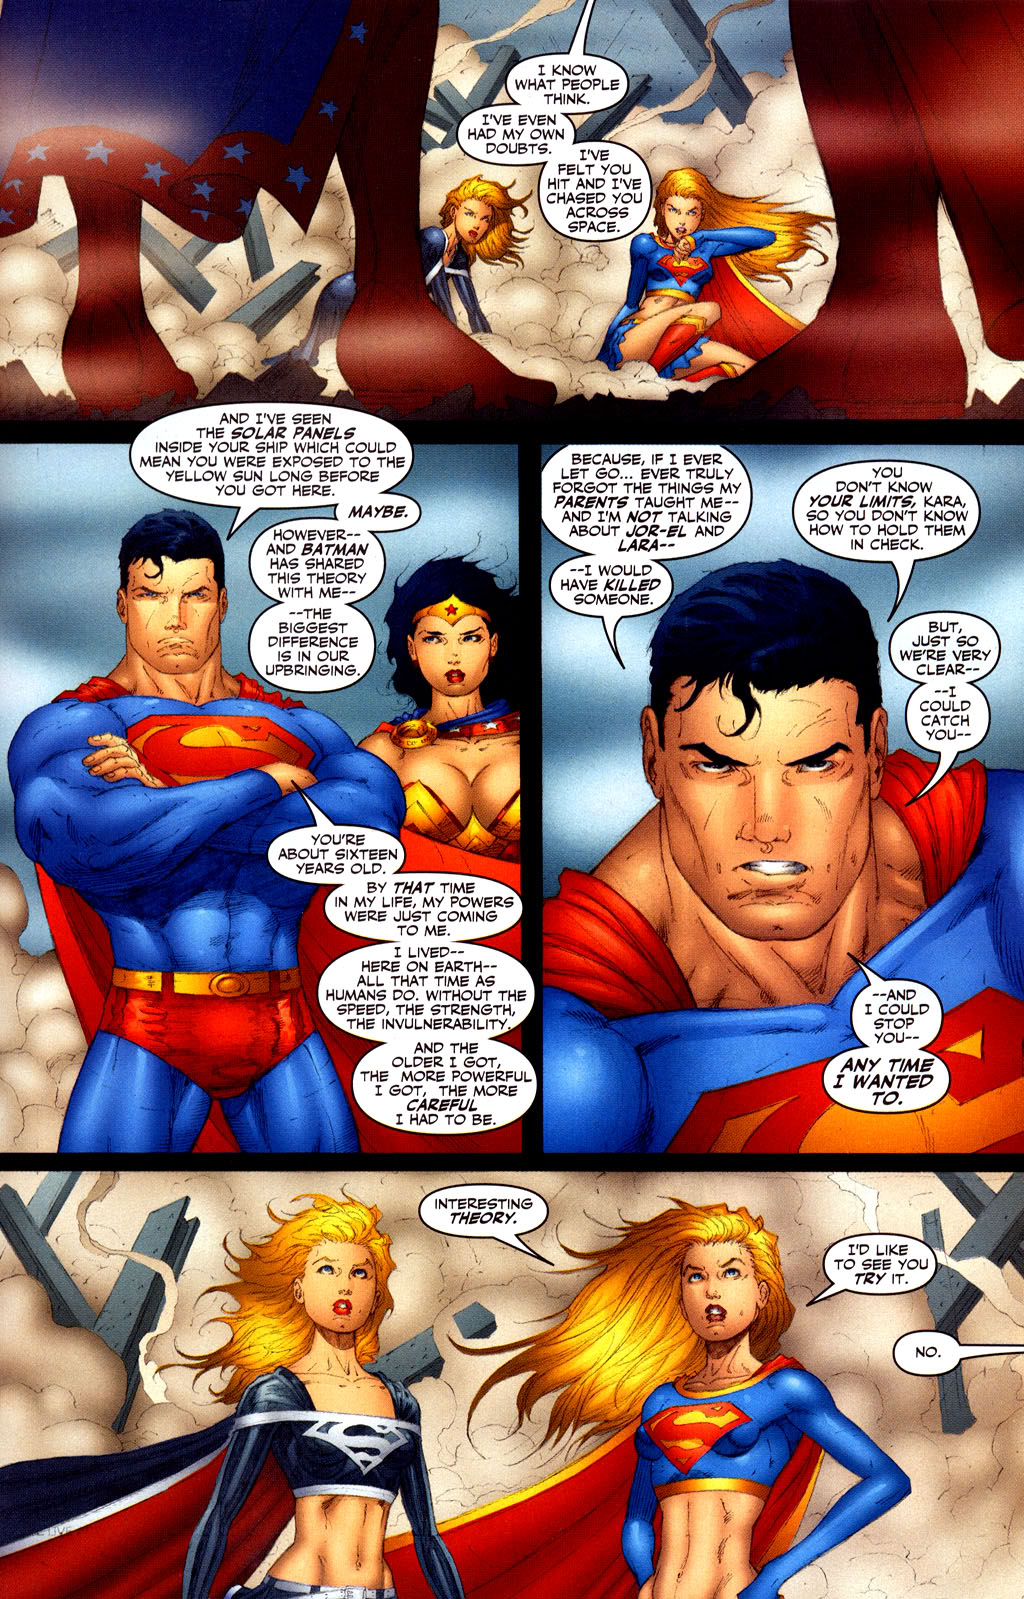 Superman saying that he is more powerful than Supergirl and stating that the older he gets the more powerful he becomes.